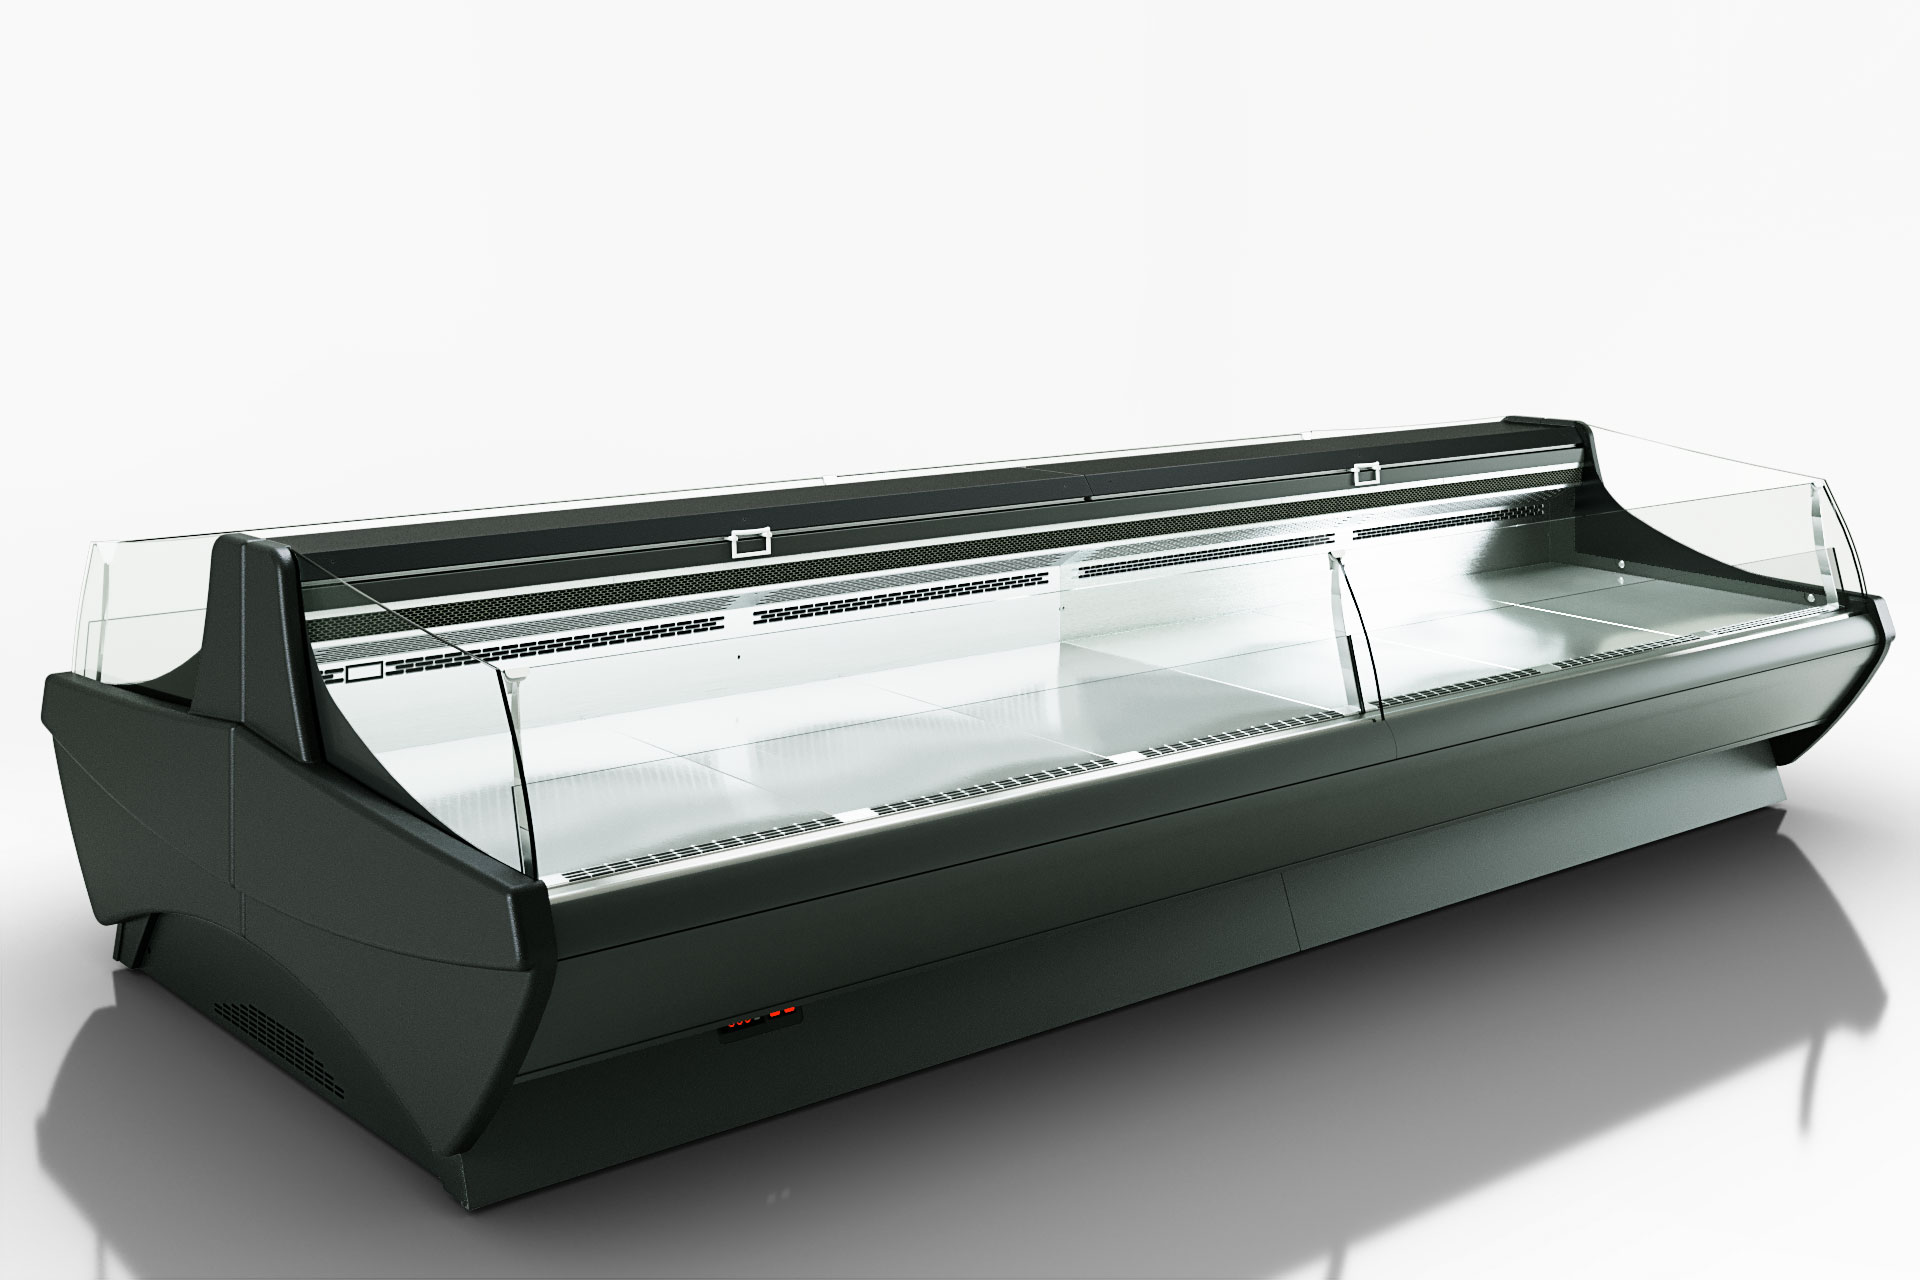 Counter Symphony duos MG 200 deli self 100-DLM